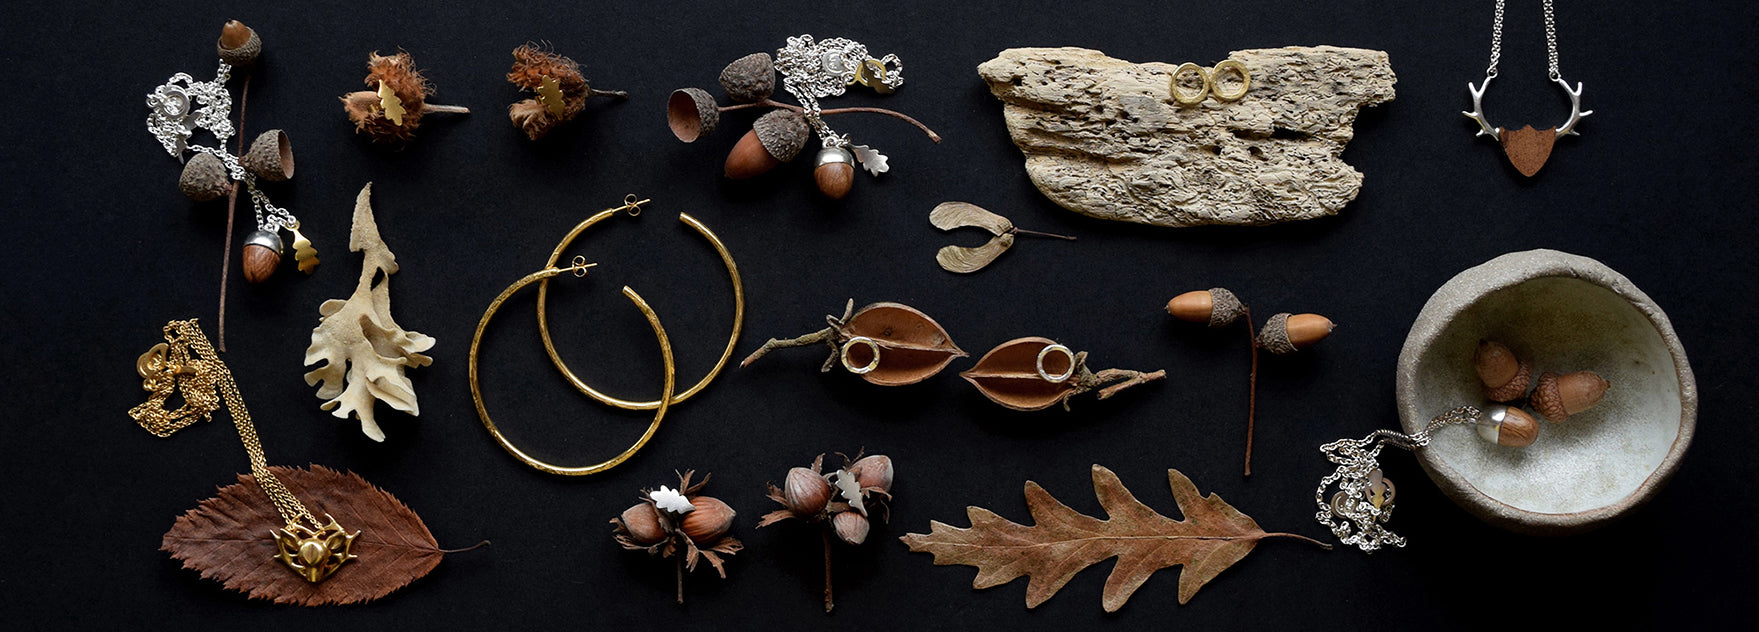 A curated collection of unique gold and silver jewellery inspired by the natural world designed and handcrafted in the UK.